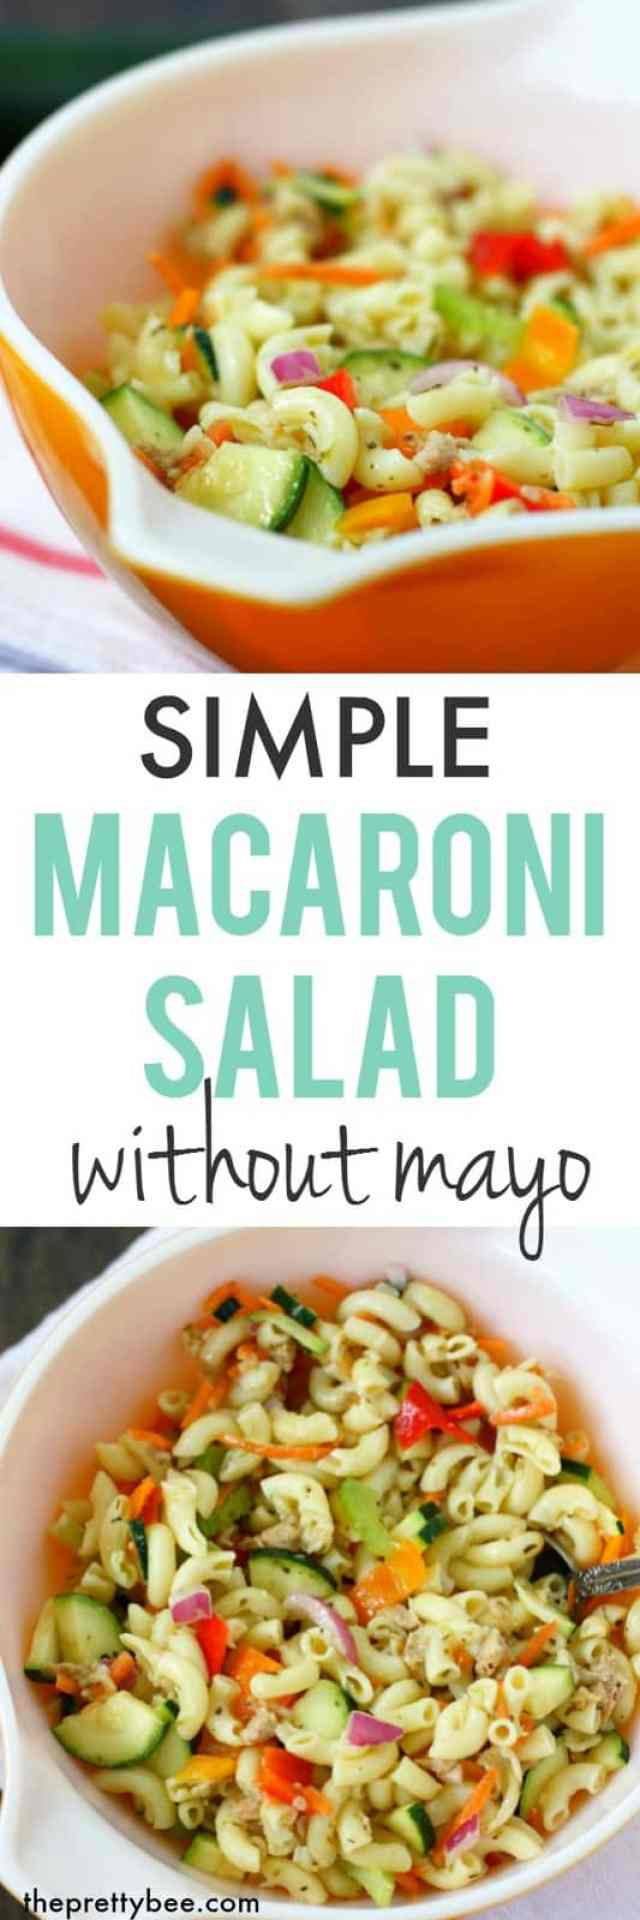 Delicious and easy macaroni salad without mayonnaise